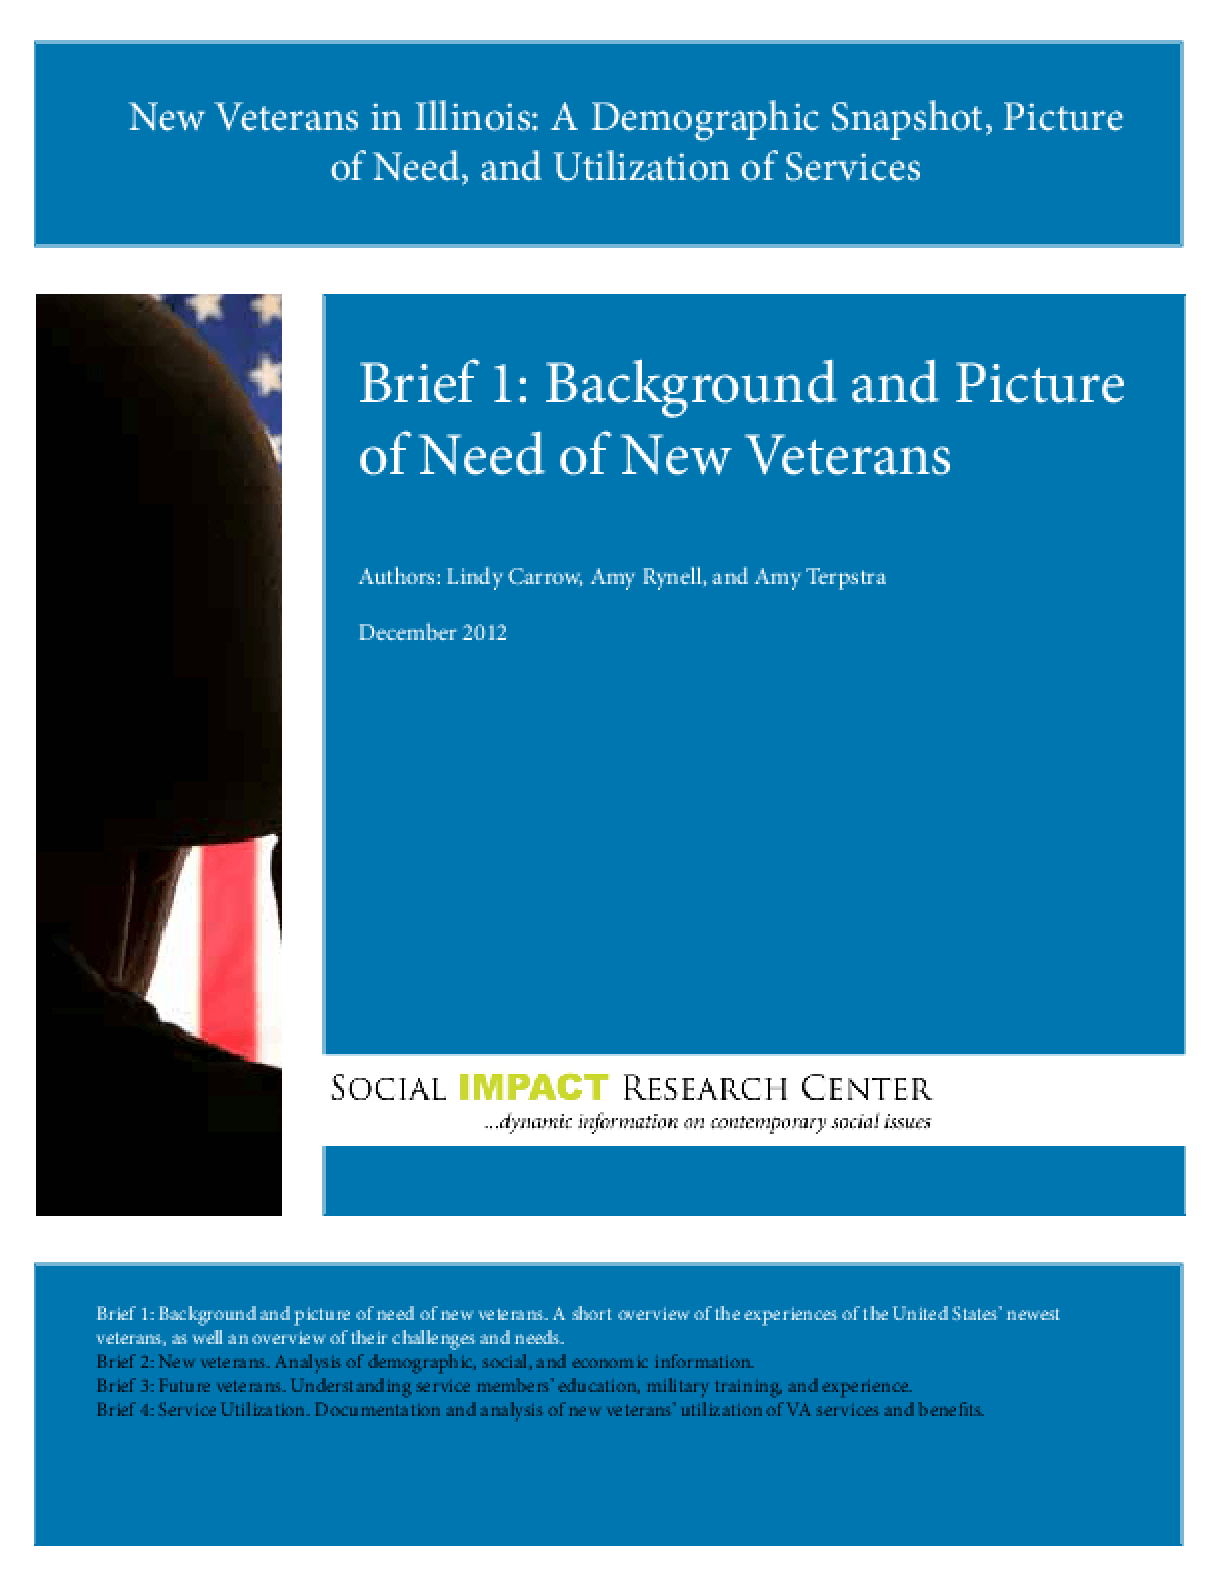 New Veterans in Illinois: Brief 1, Background and Picture of Need of New Veterans